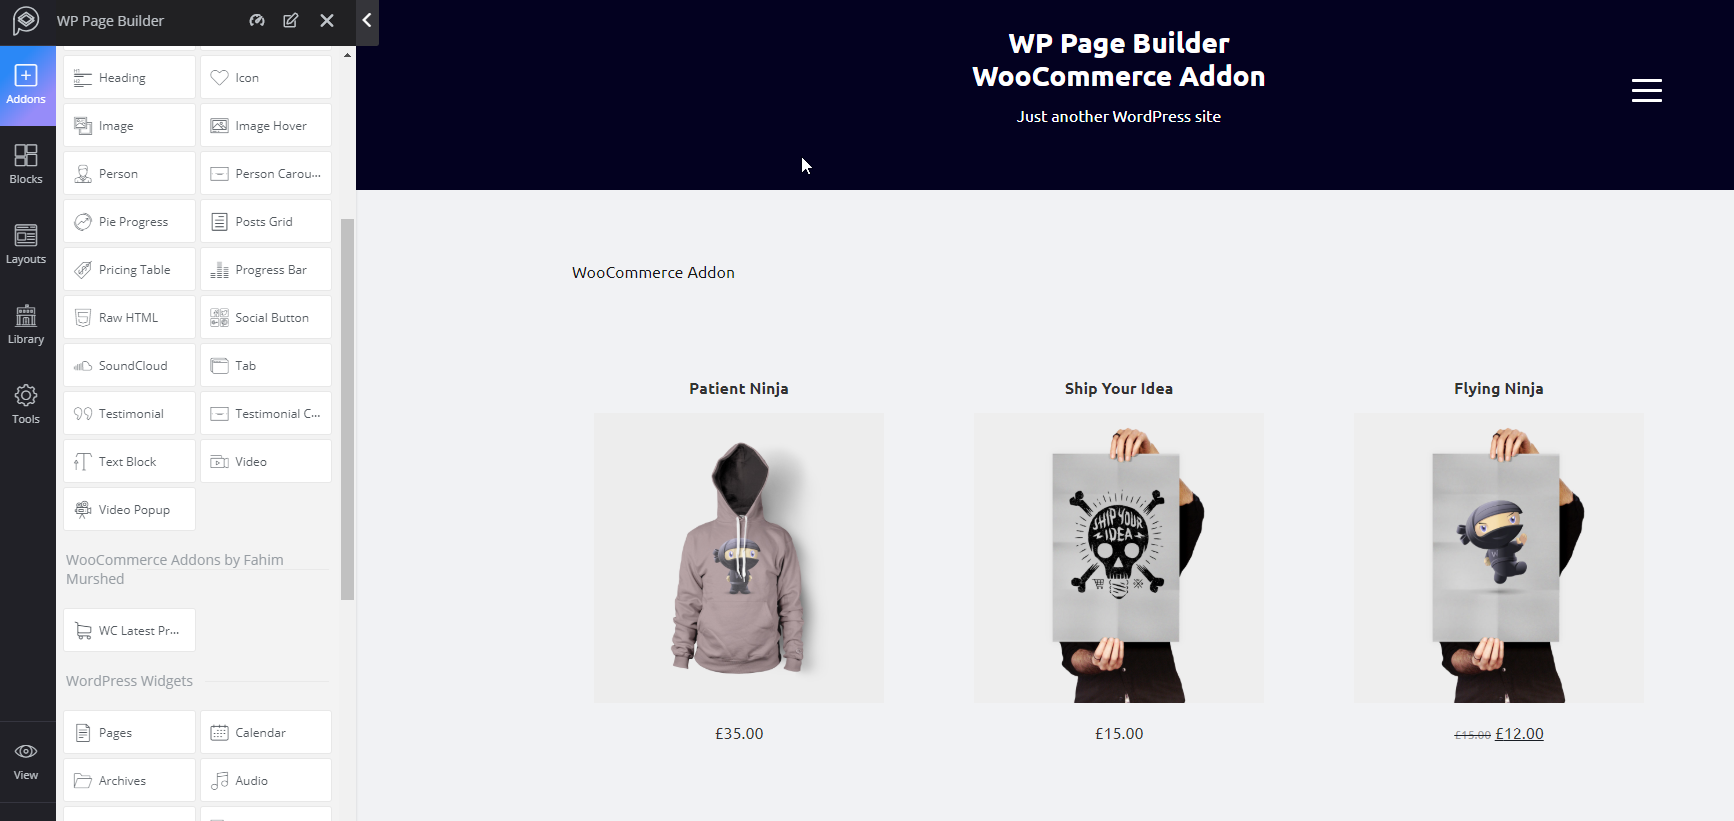 WP Page Builder WooCommerce Addon